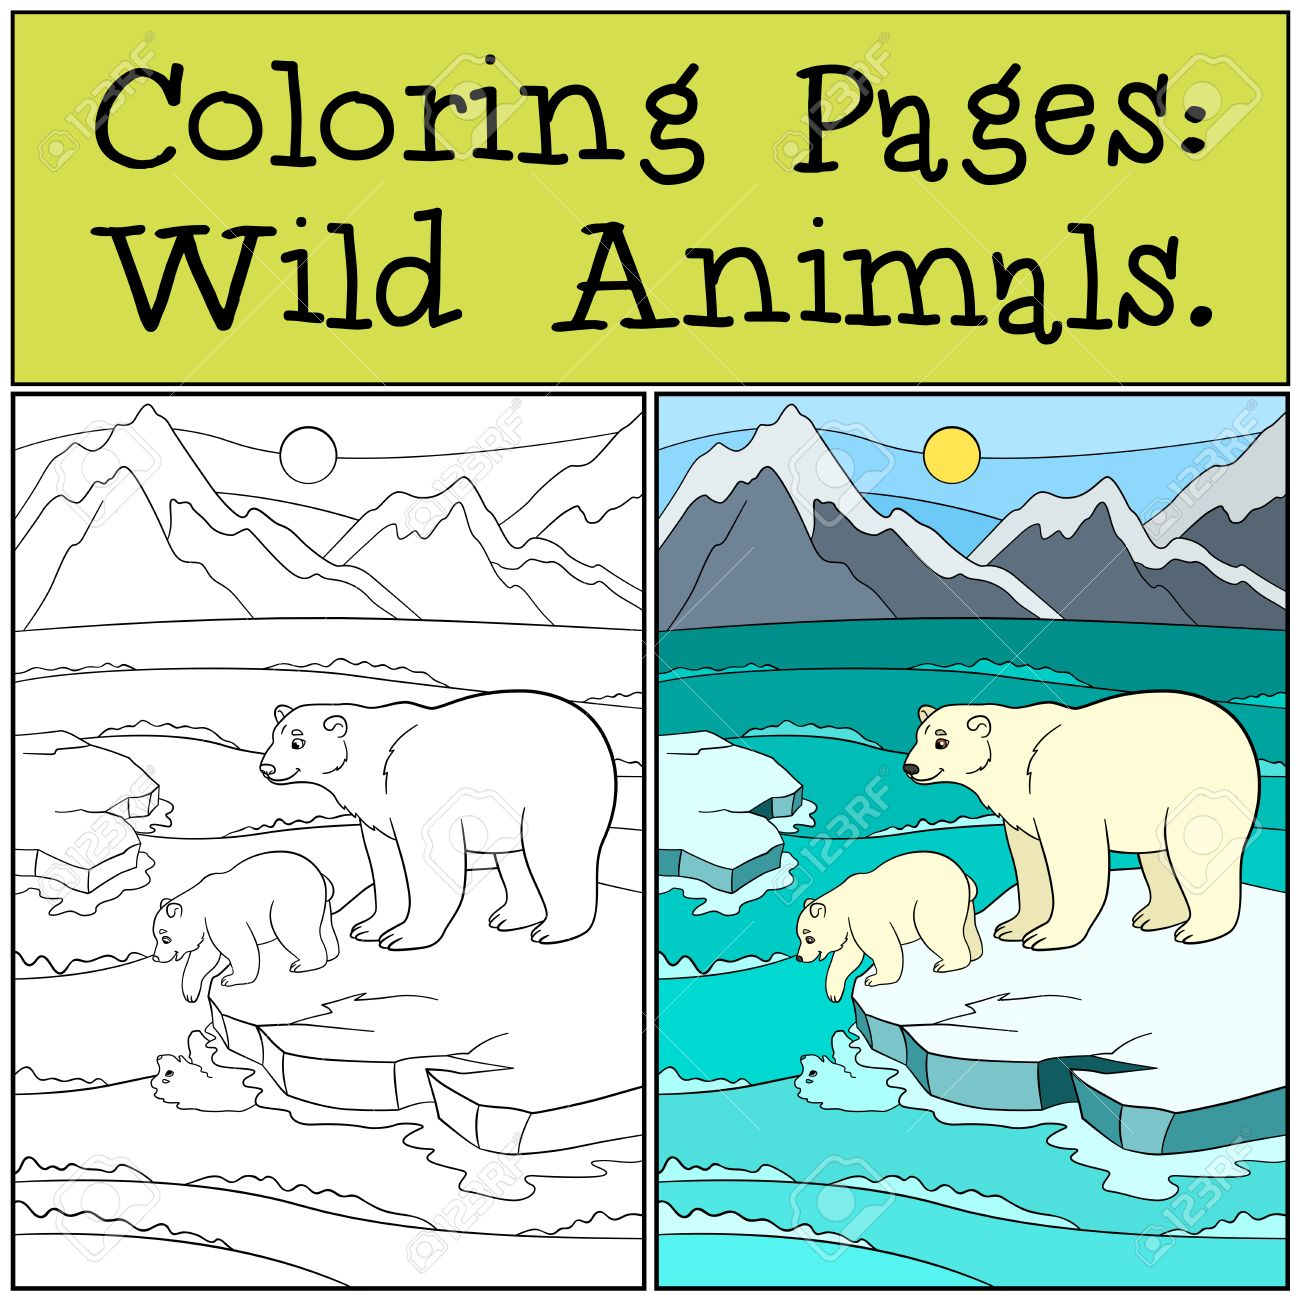 Coloring Pages Wild Animals Mother Polar Bear Stands On The Ice Floe With